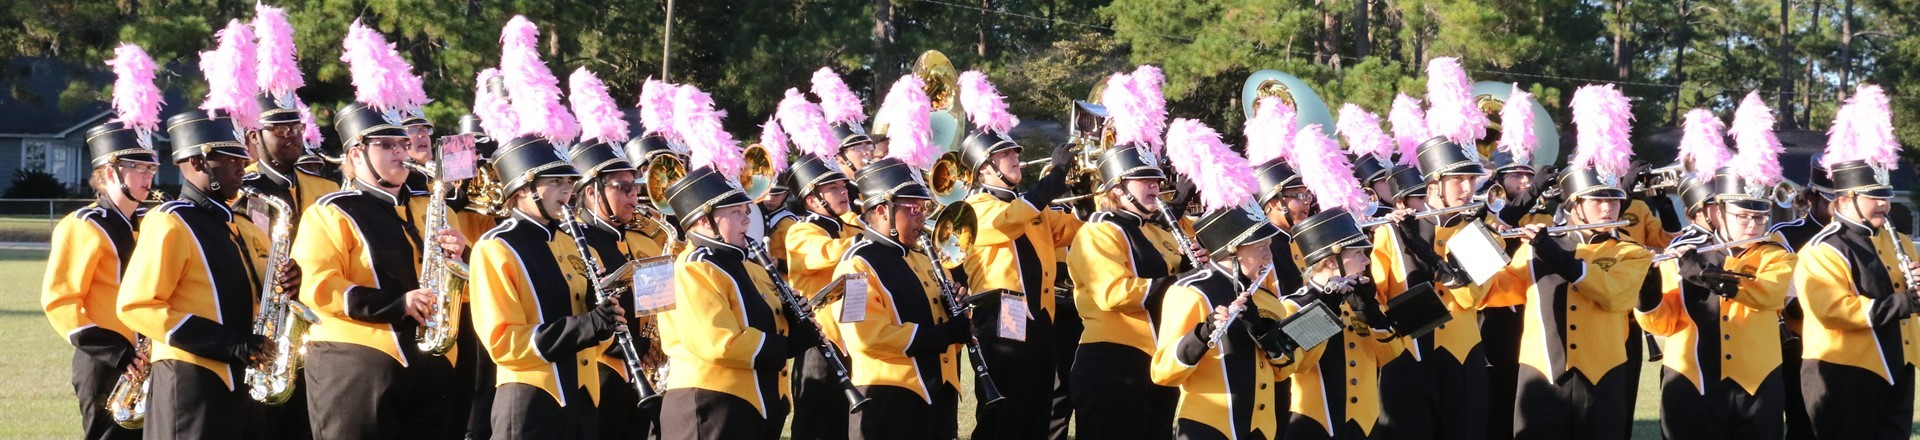 WCHS Marching Band